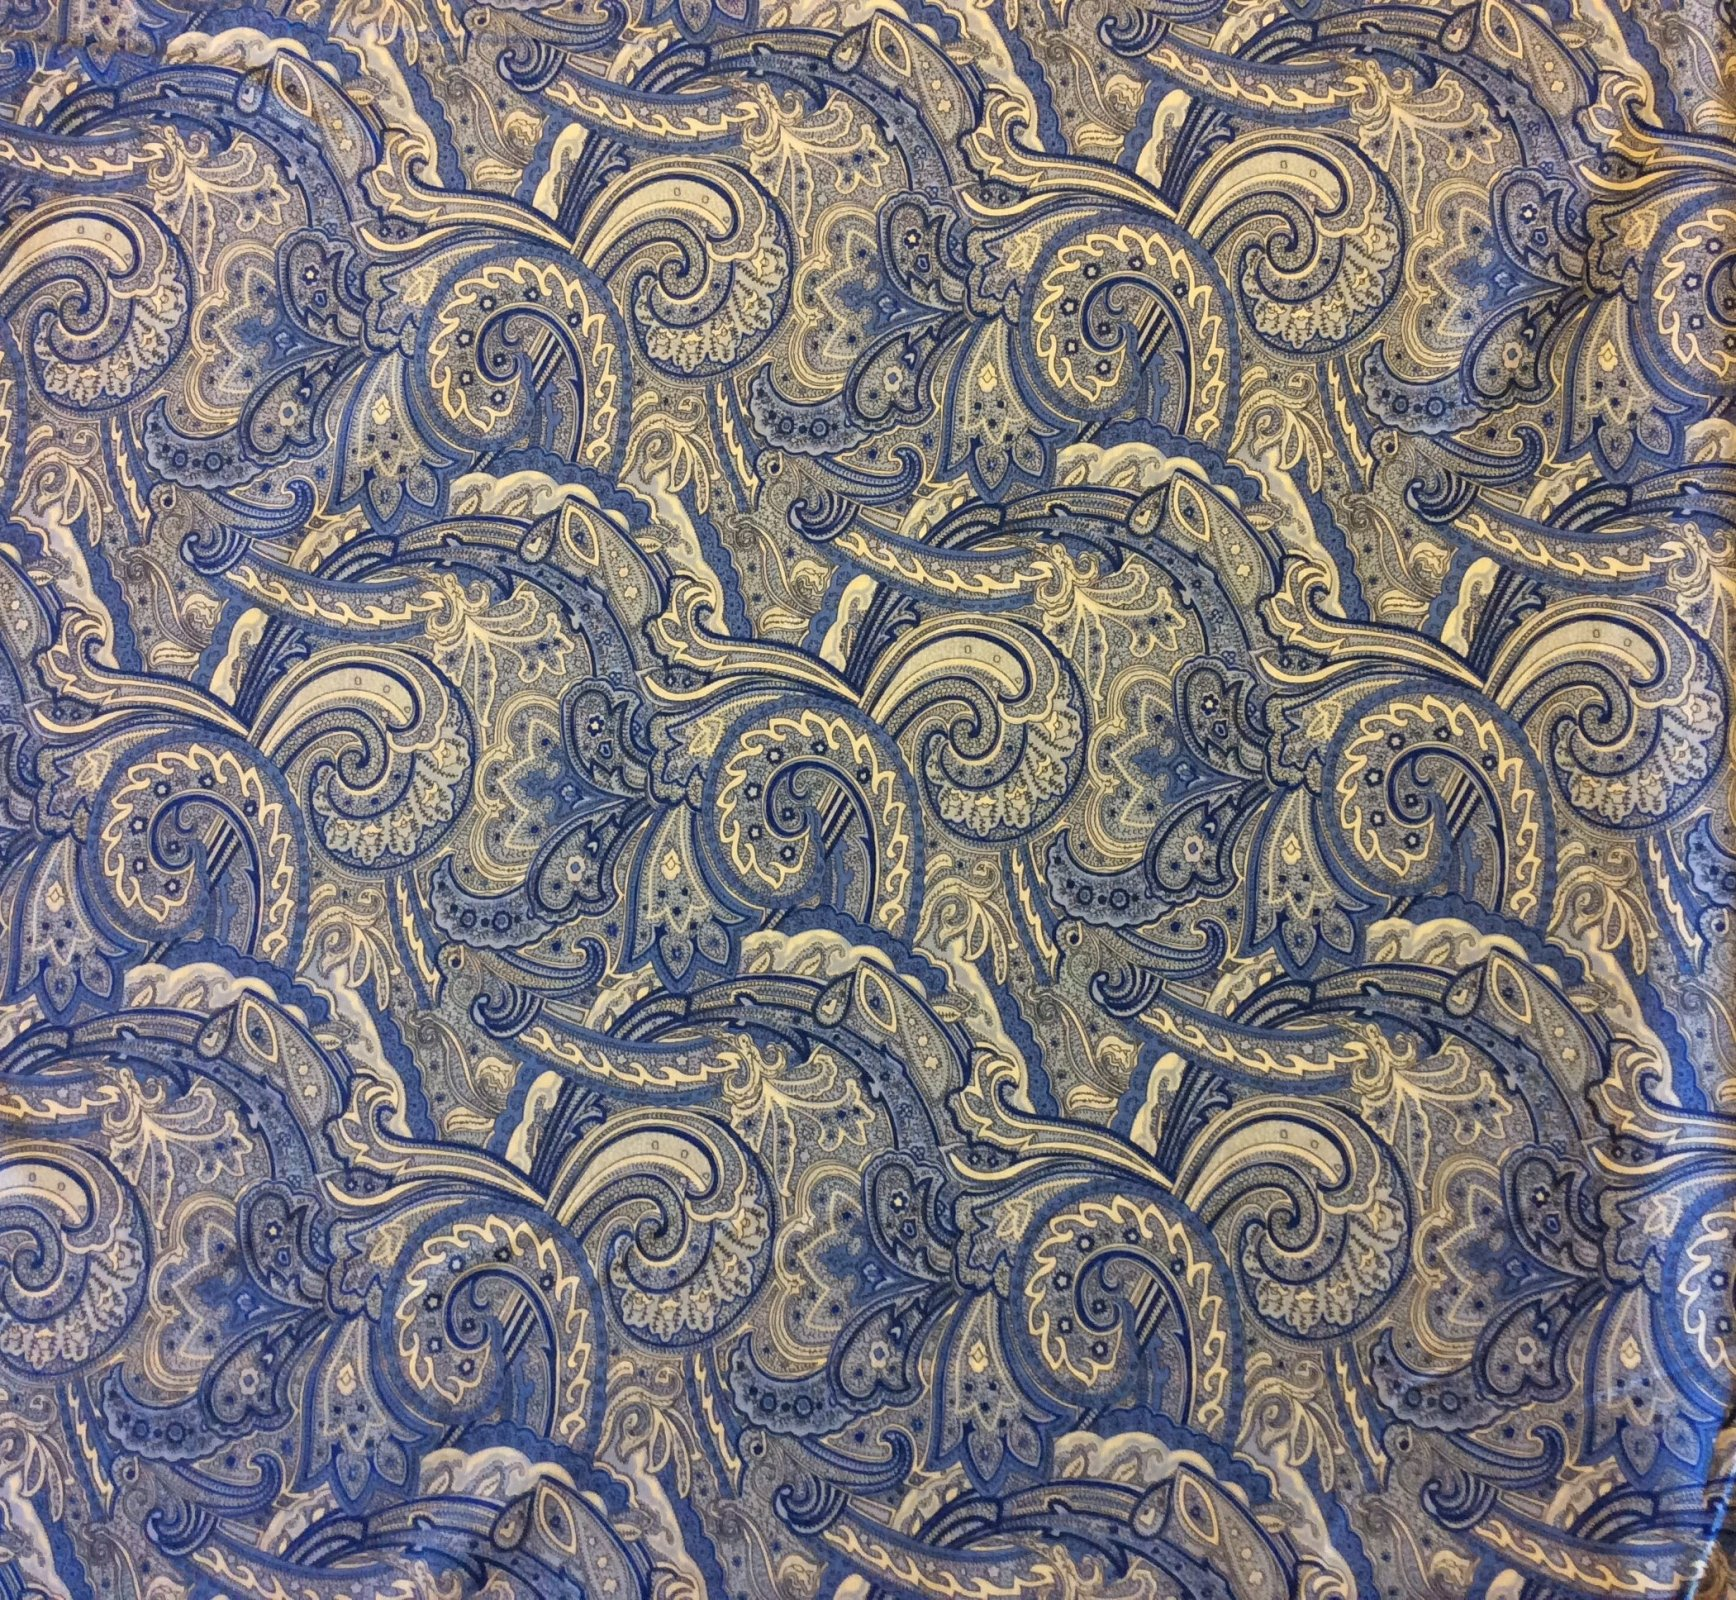 Persian Fabric: Blue Paisley Swirl French Provincial Boteh Persian